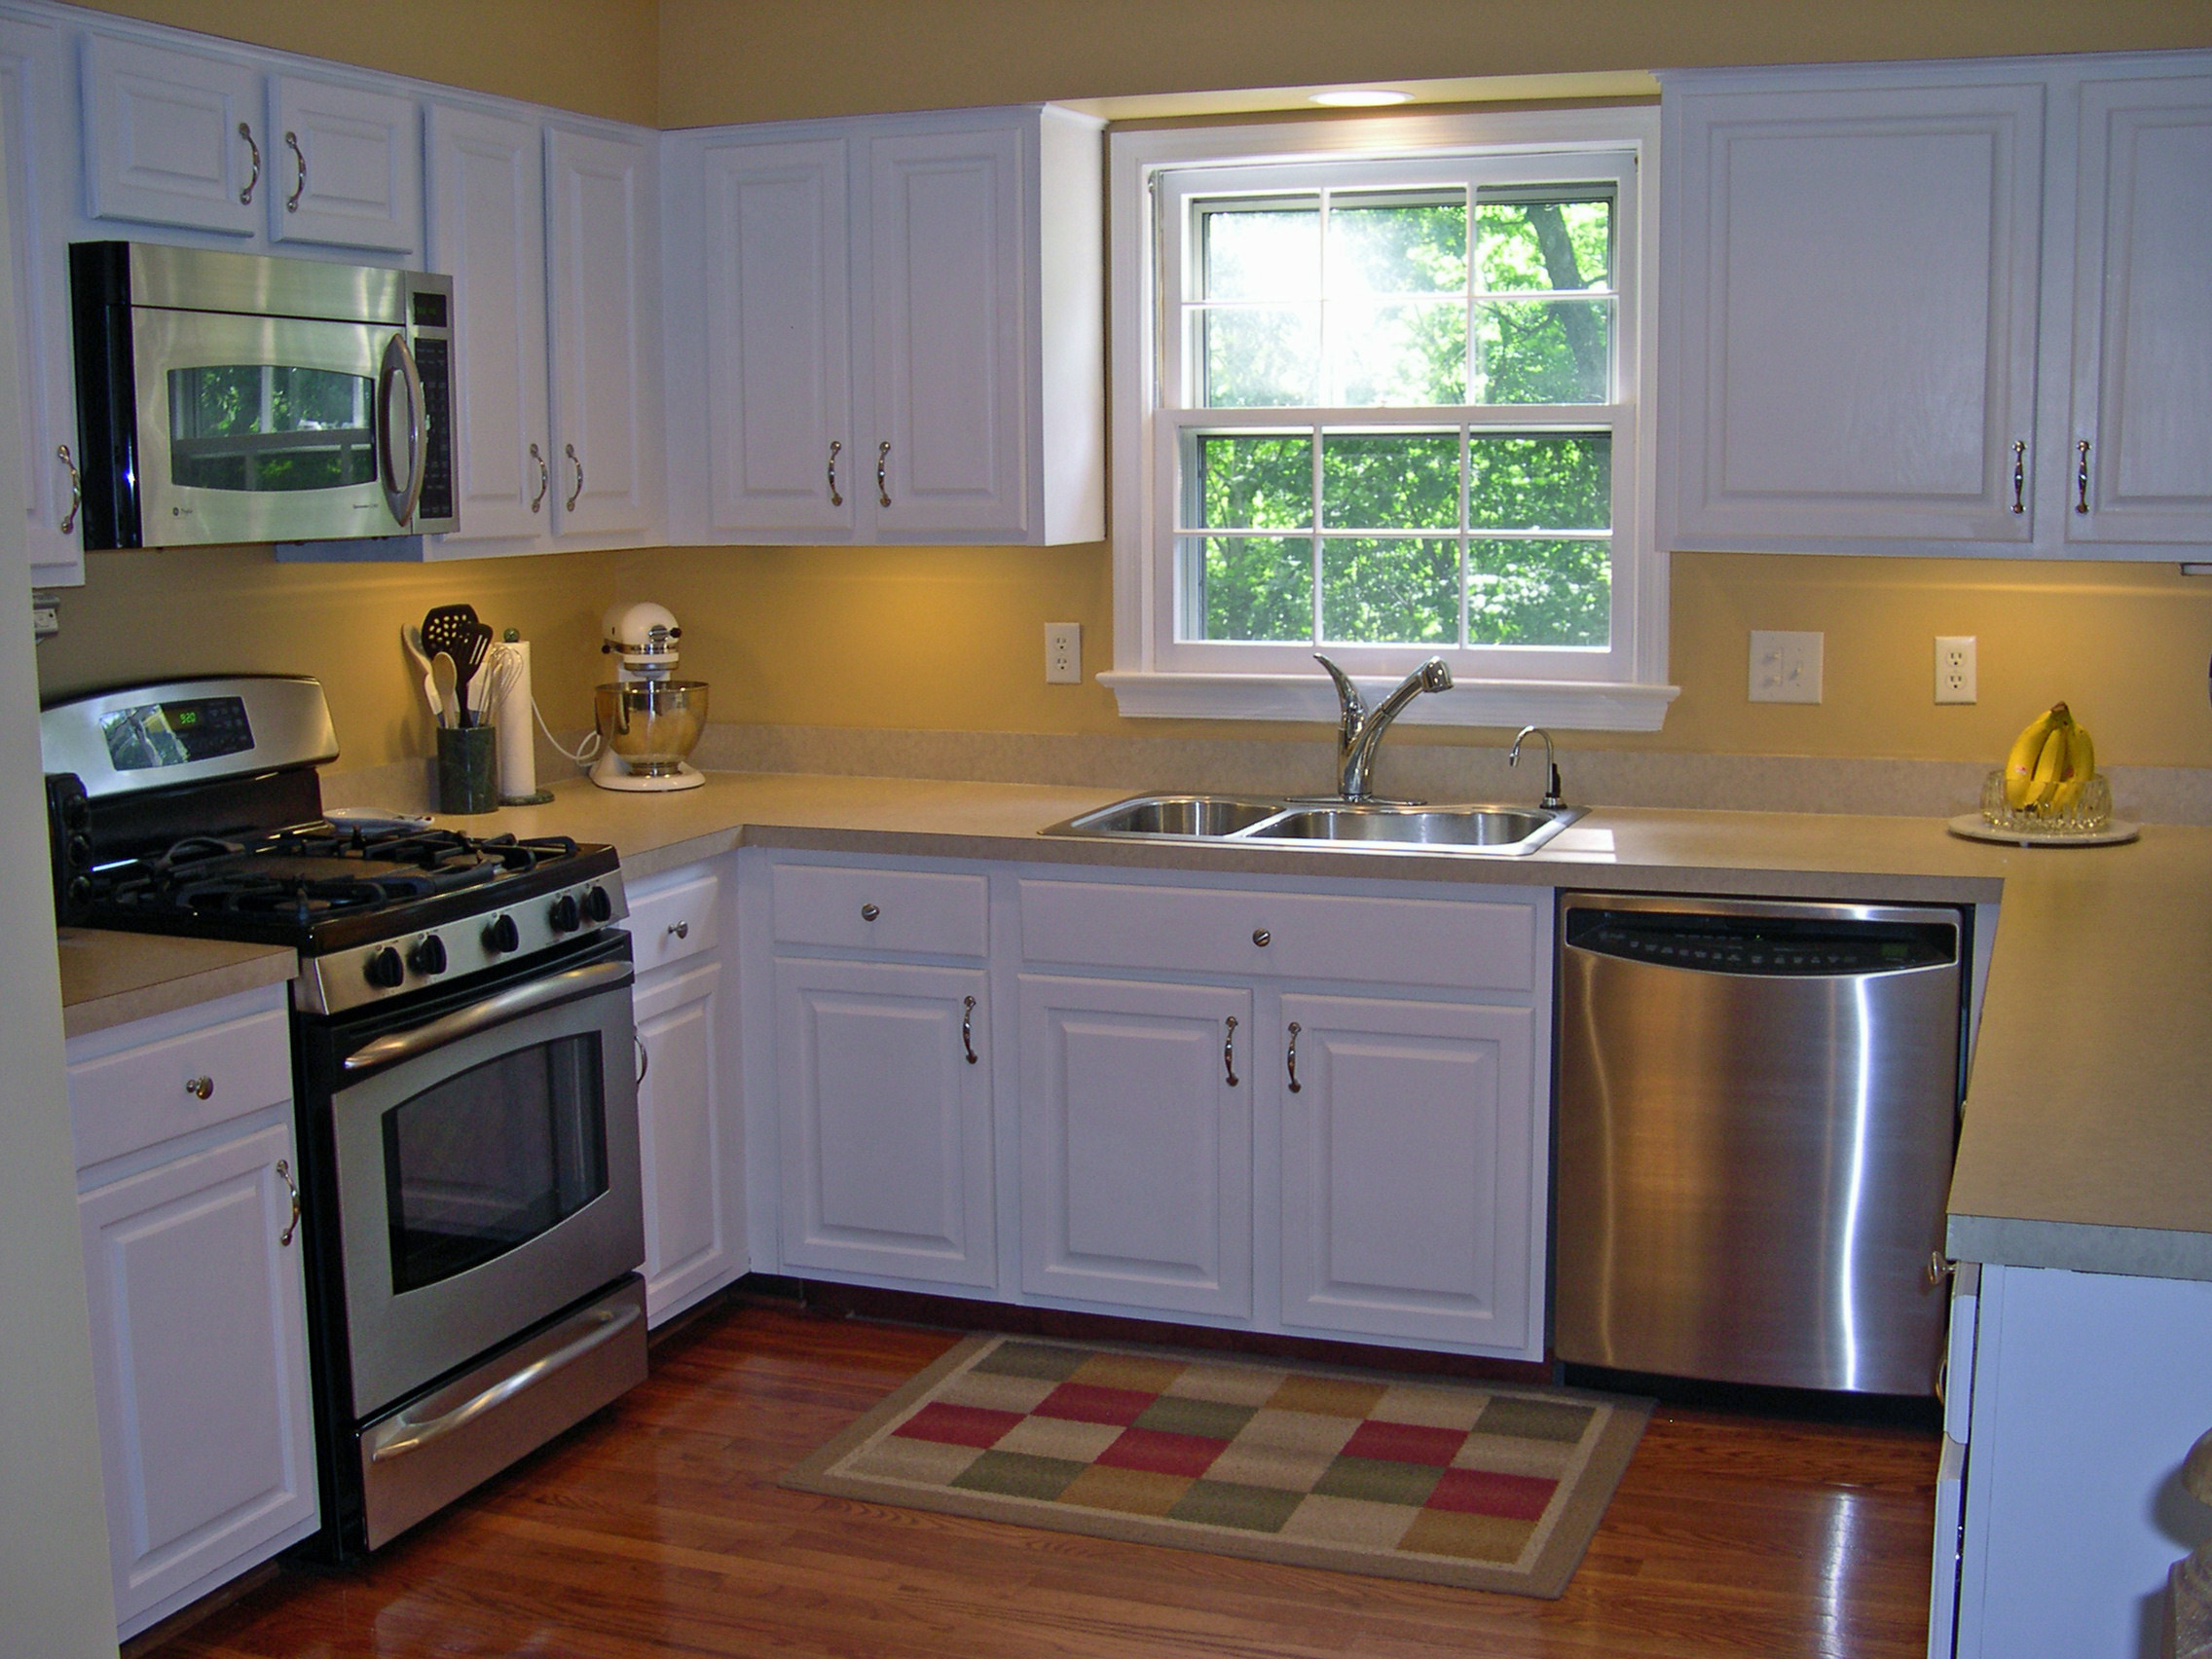 pictures of small kitchen remodels photo - 1